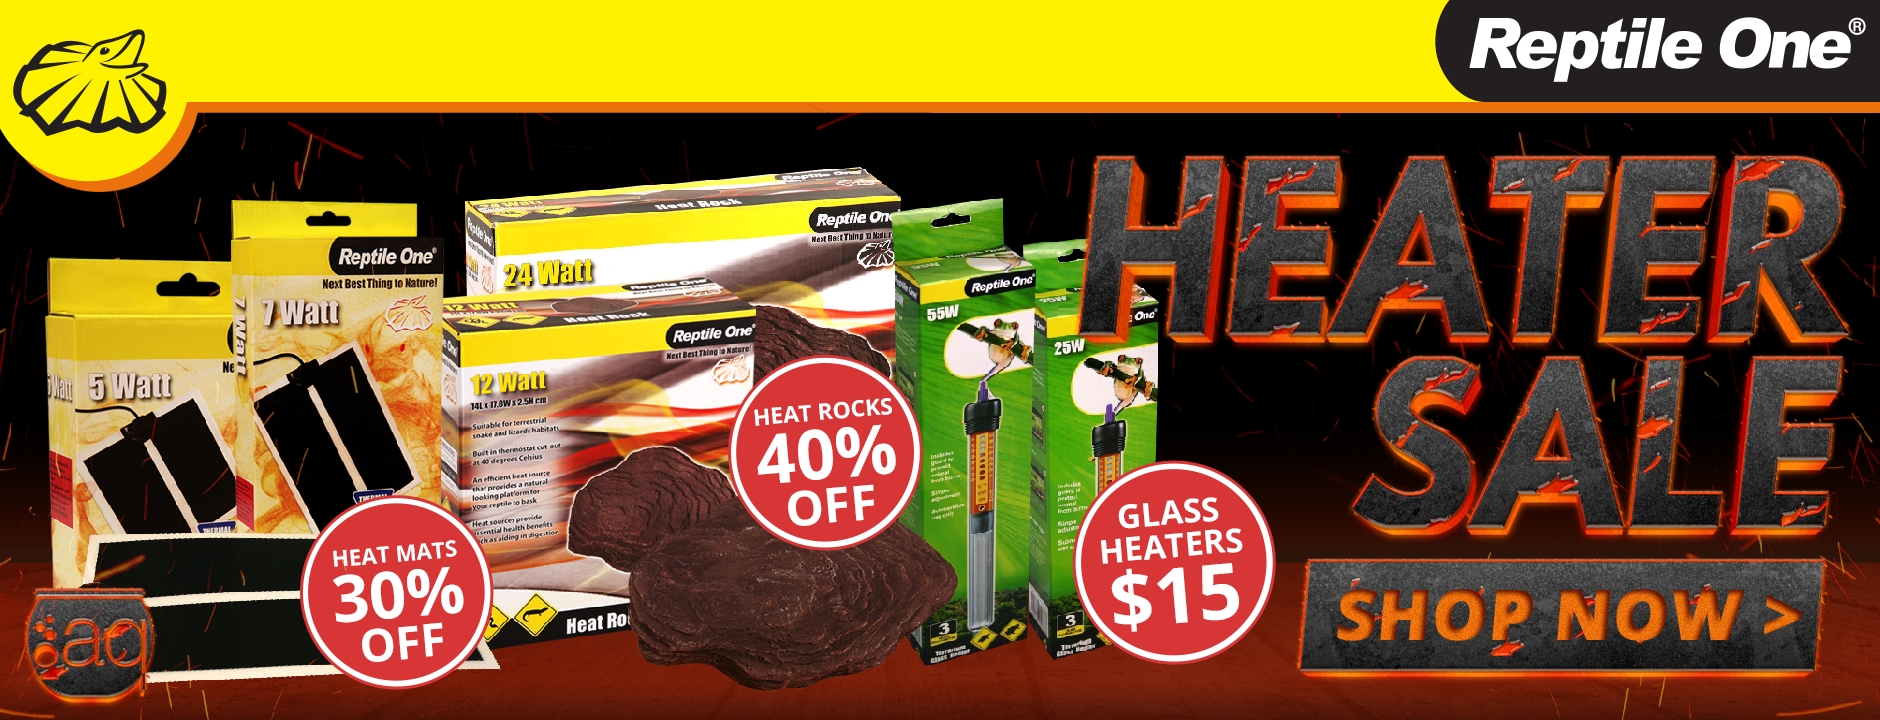 reptile-one-heating-sale.png